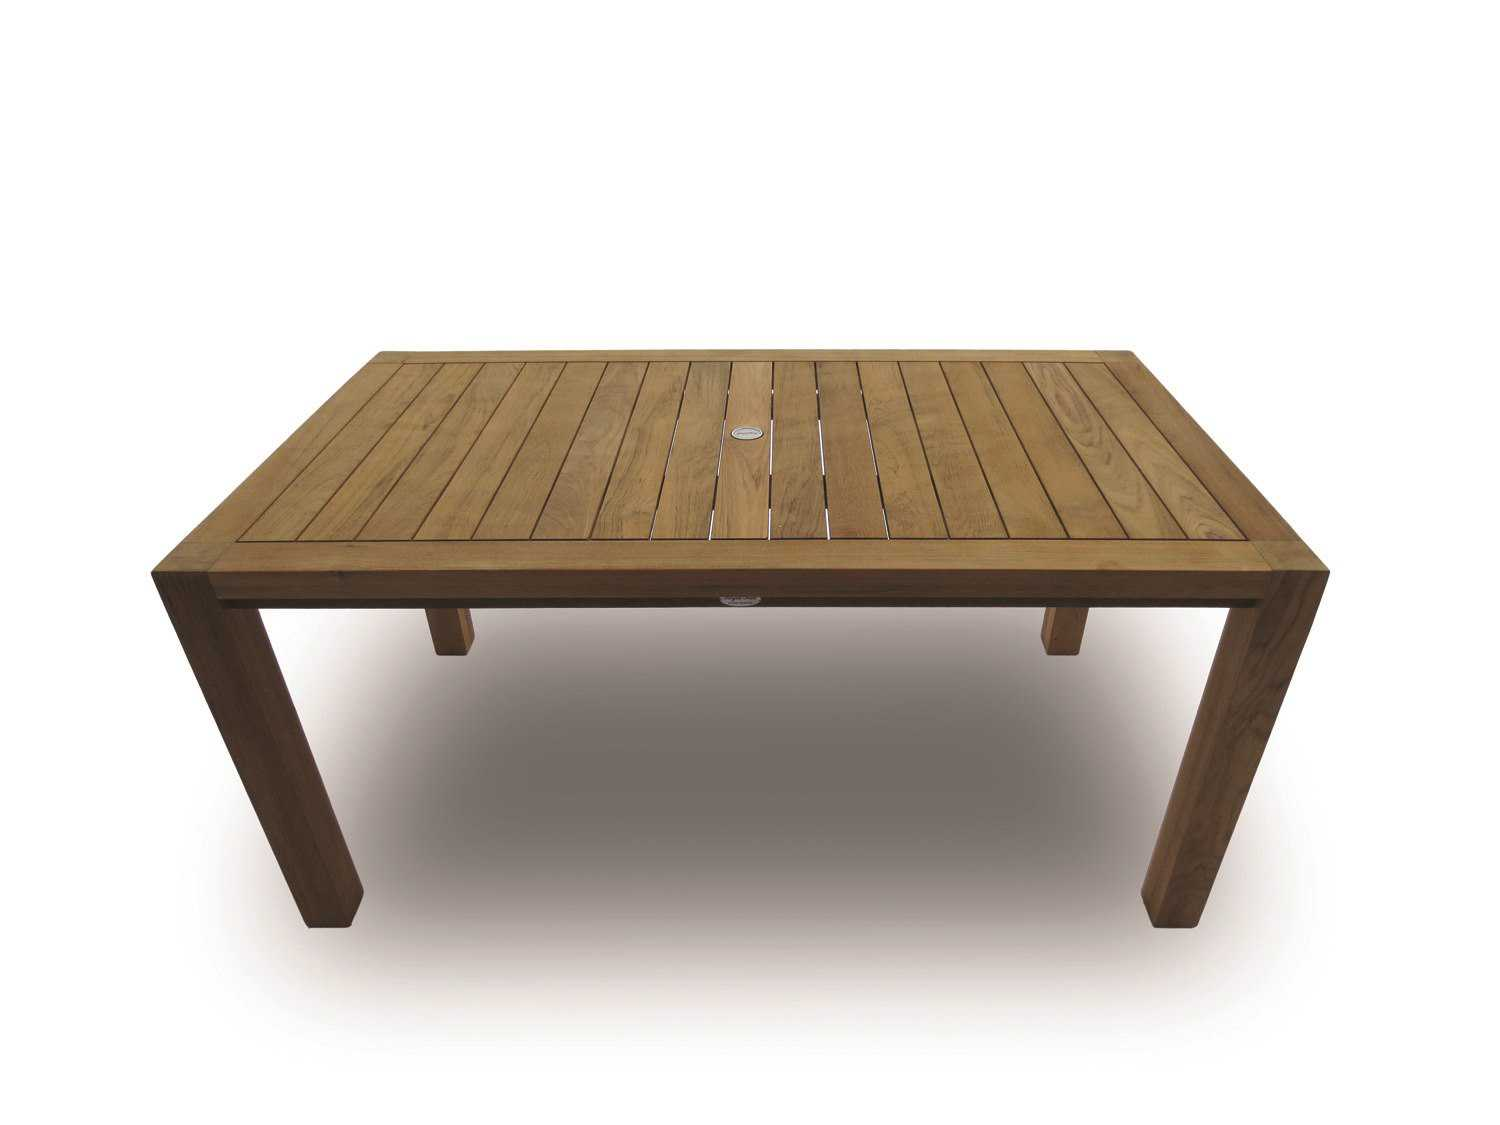 Royal teak collection comfort 63 x 35 rectangular dining for Royal dining table